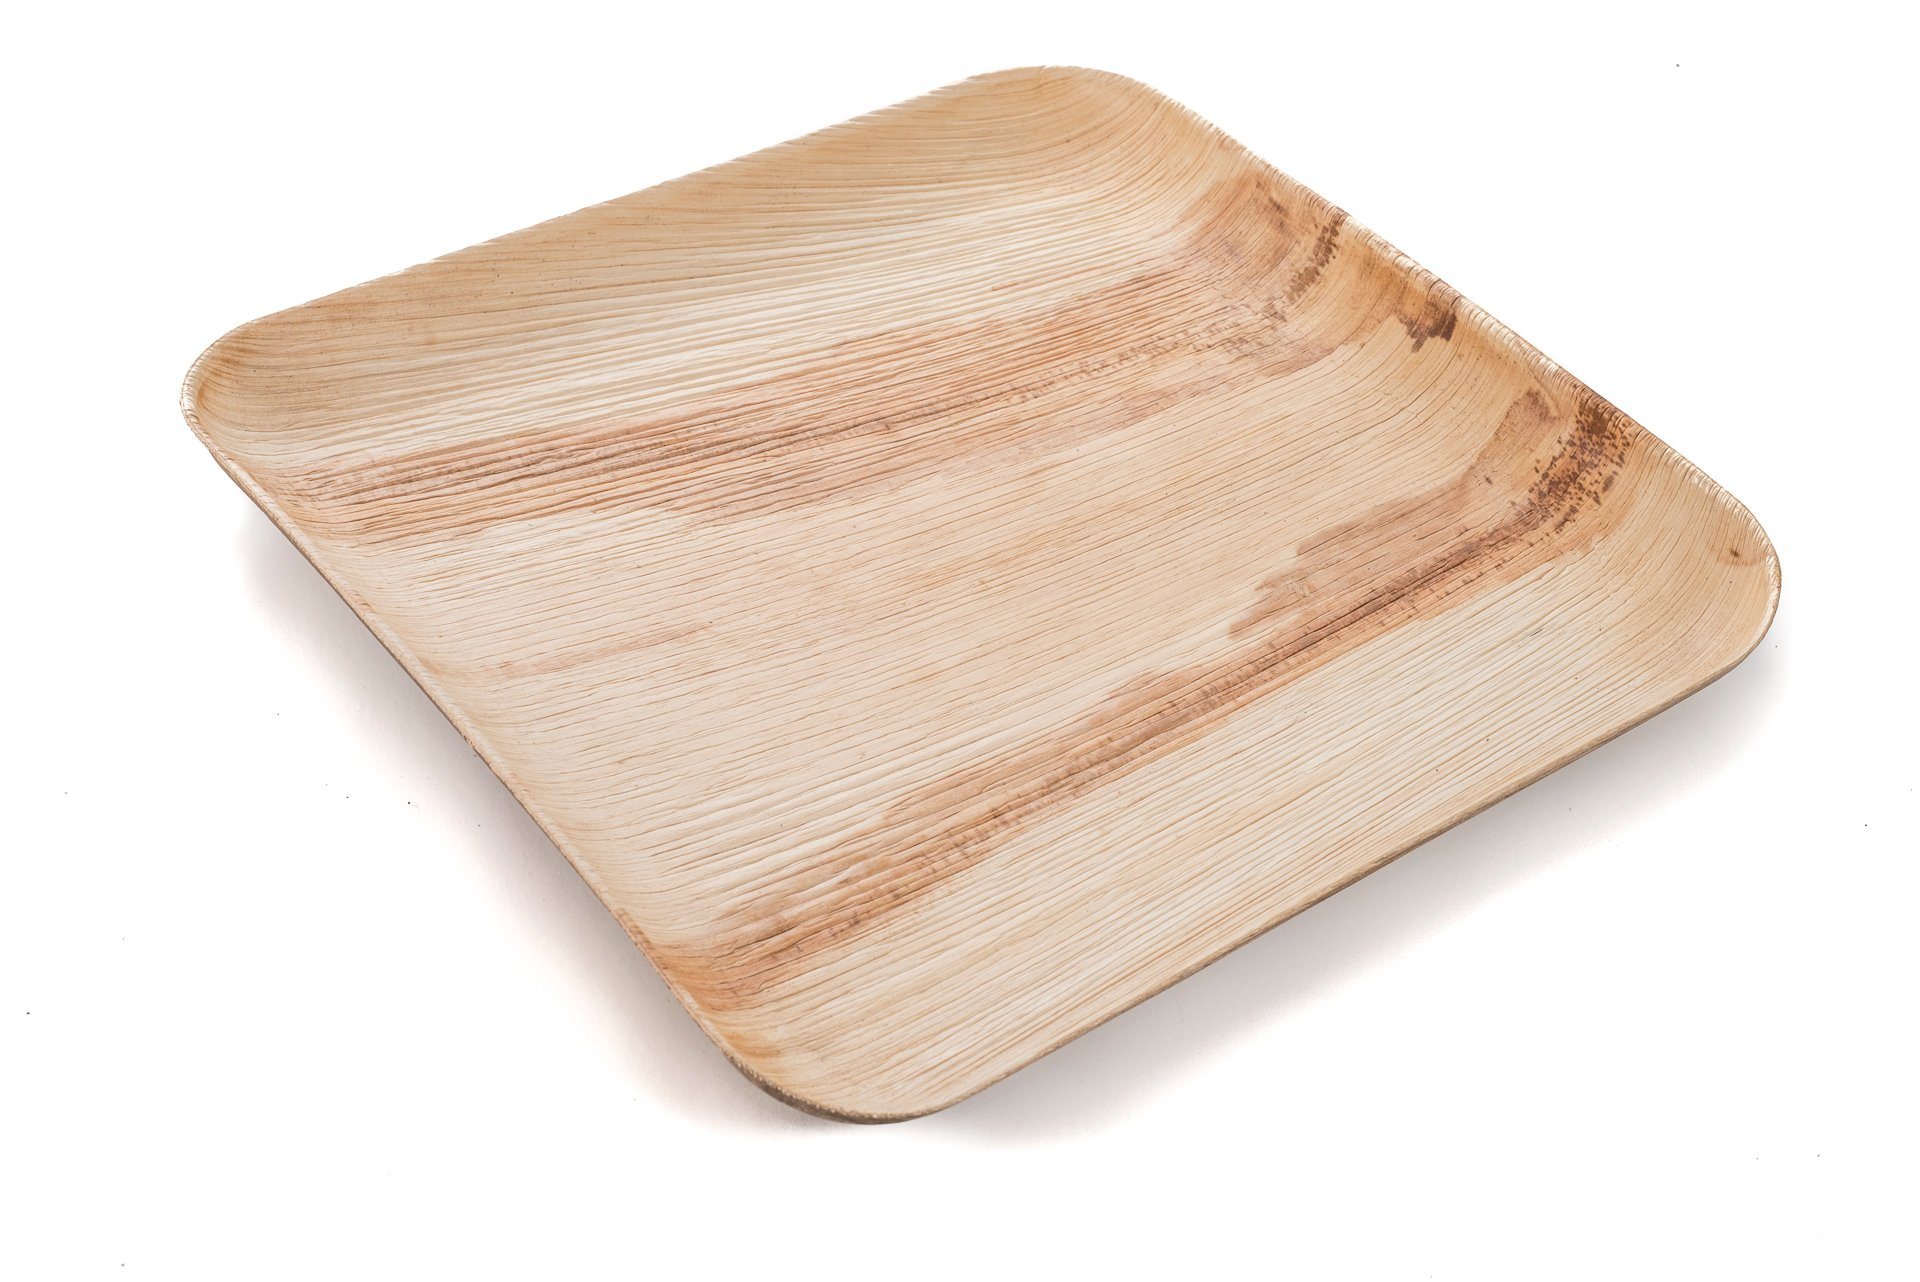 """9"""" Square Palm Leaf Plates - Pack of 25 - Disposable, Compostable, Natural, Tree Free, Sustainable, Eco-Friendly - Fancy Rustic Party Dinnerware and Utensils Like Wood, Bamboo by Clean Earth Goods (Image #2)"""